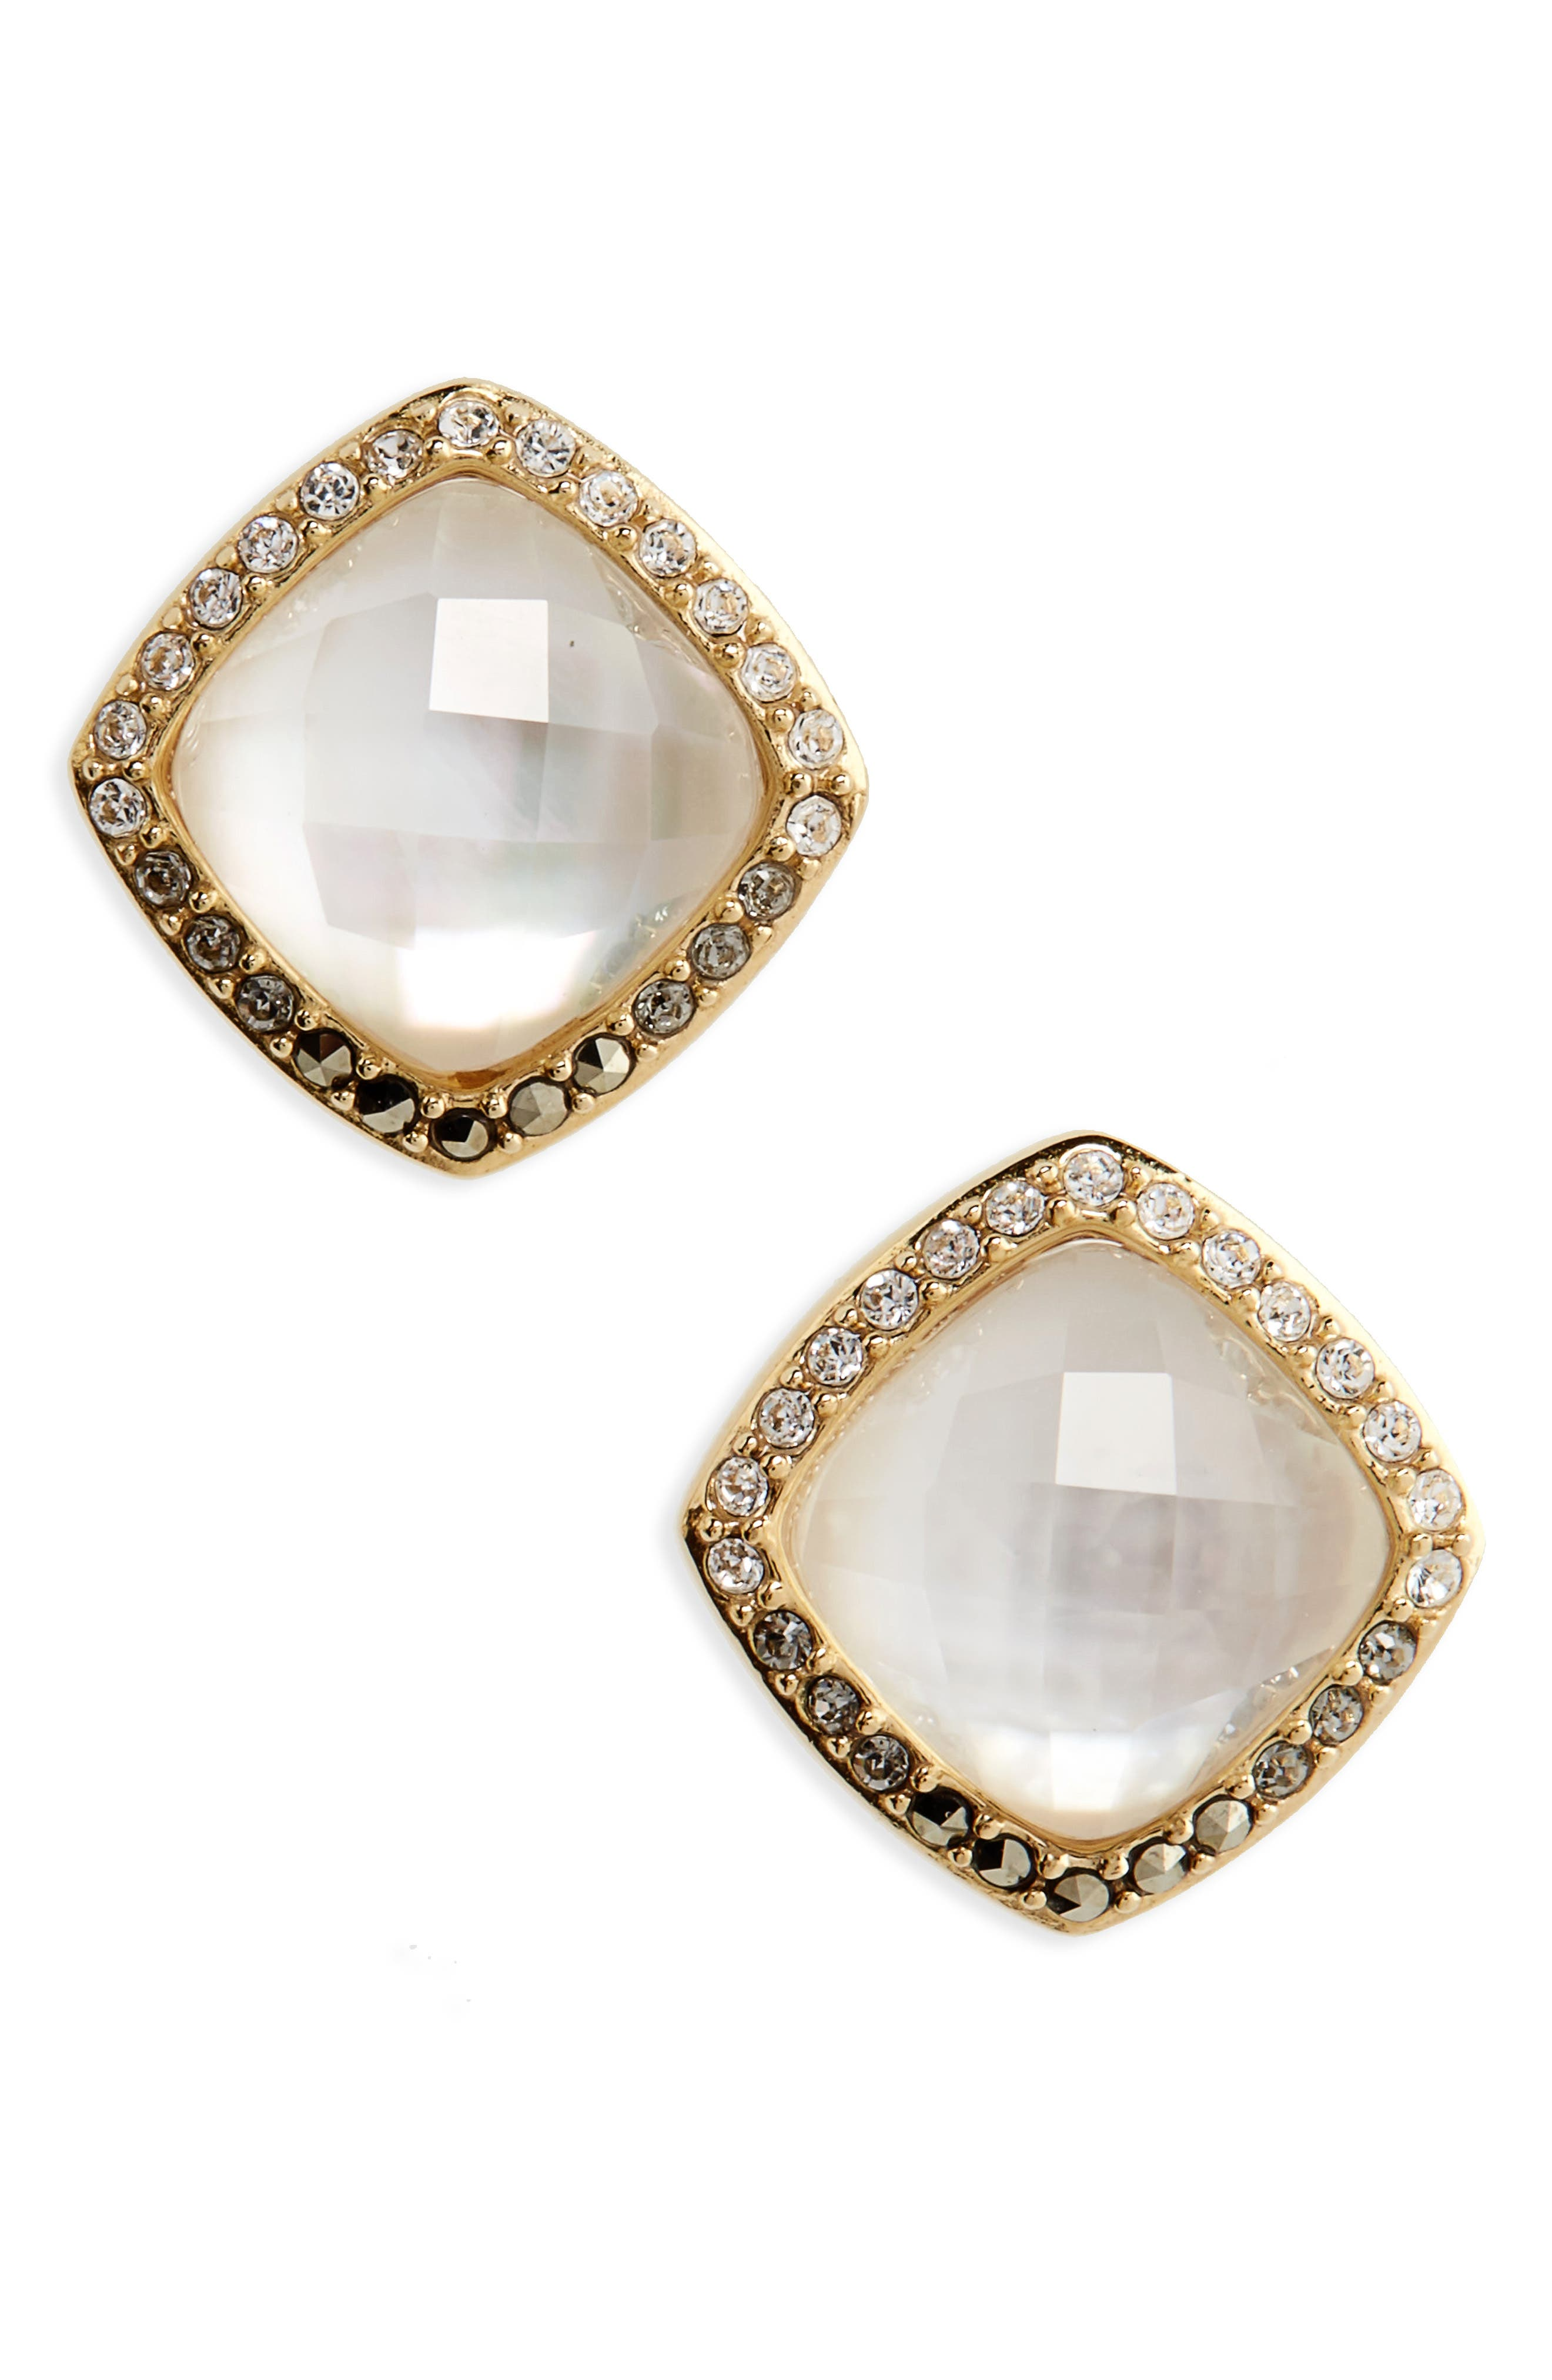 Alternate Image 1 Selected - Judith Jack Tropical Touches Doublet Stud Earrings